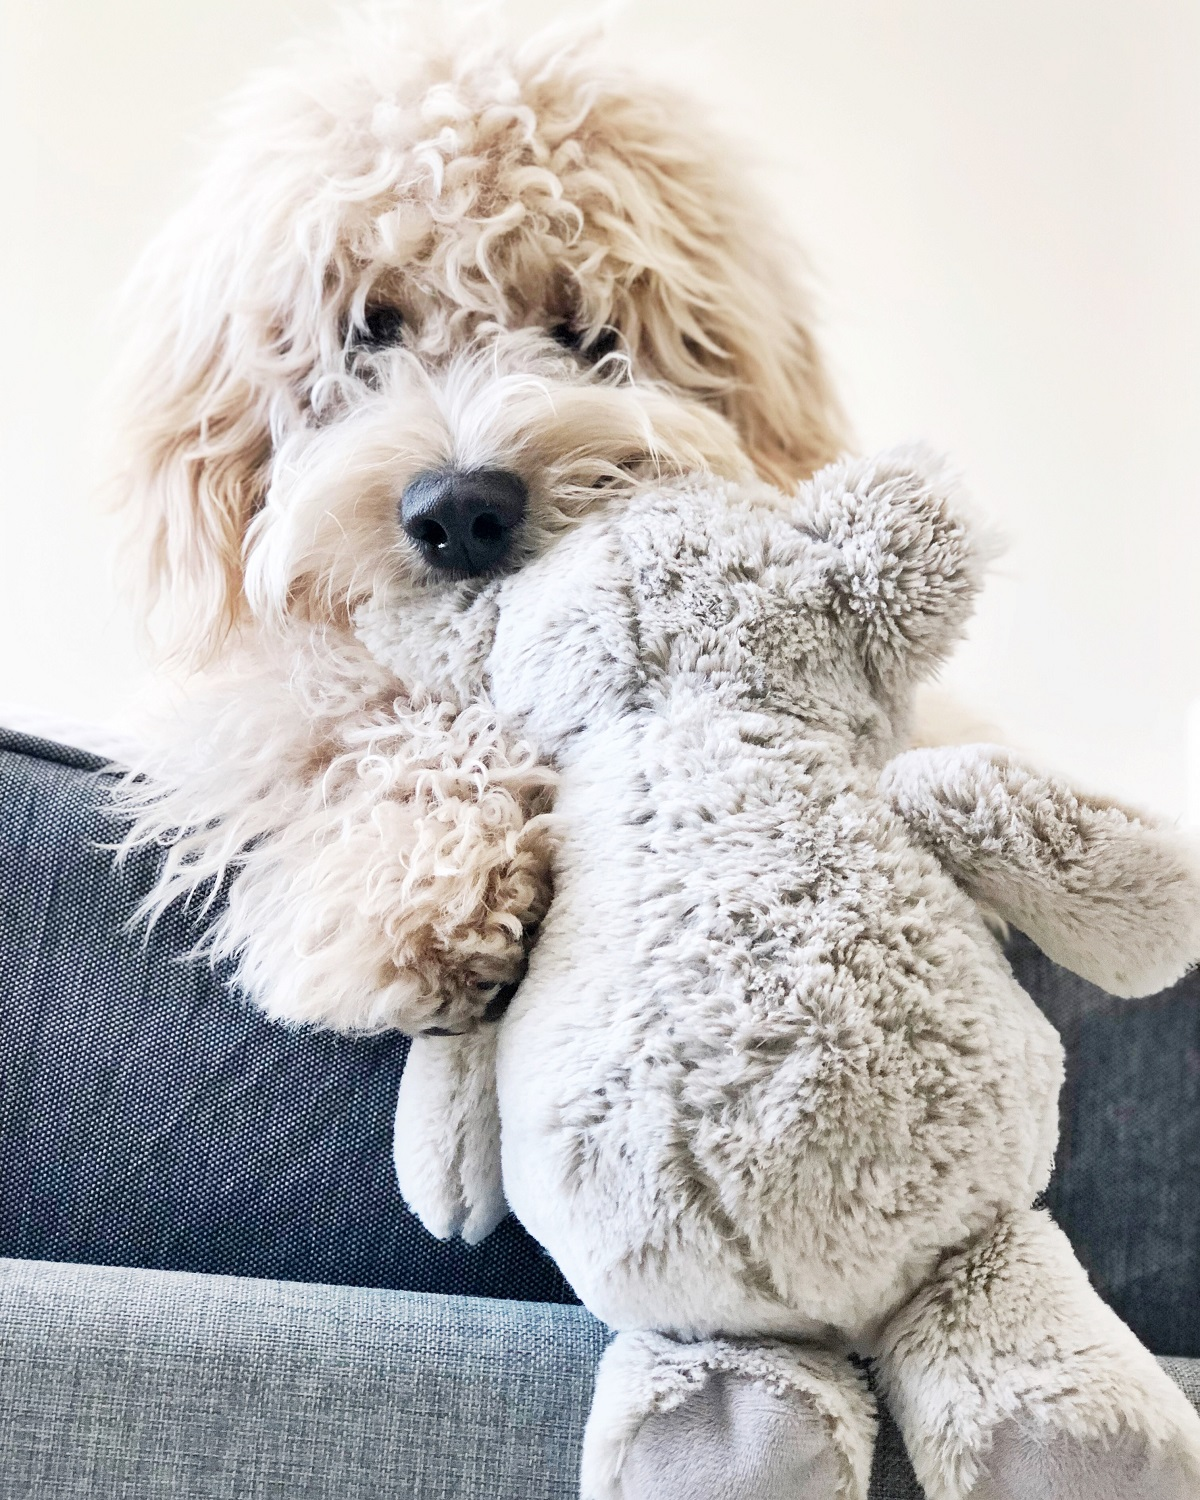 Dog Activities: Games To Play With Your Dog Indoors